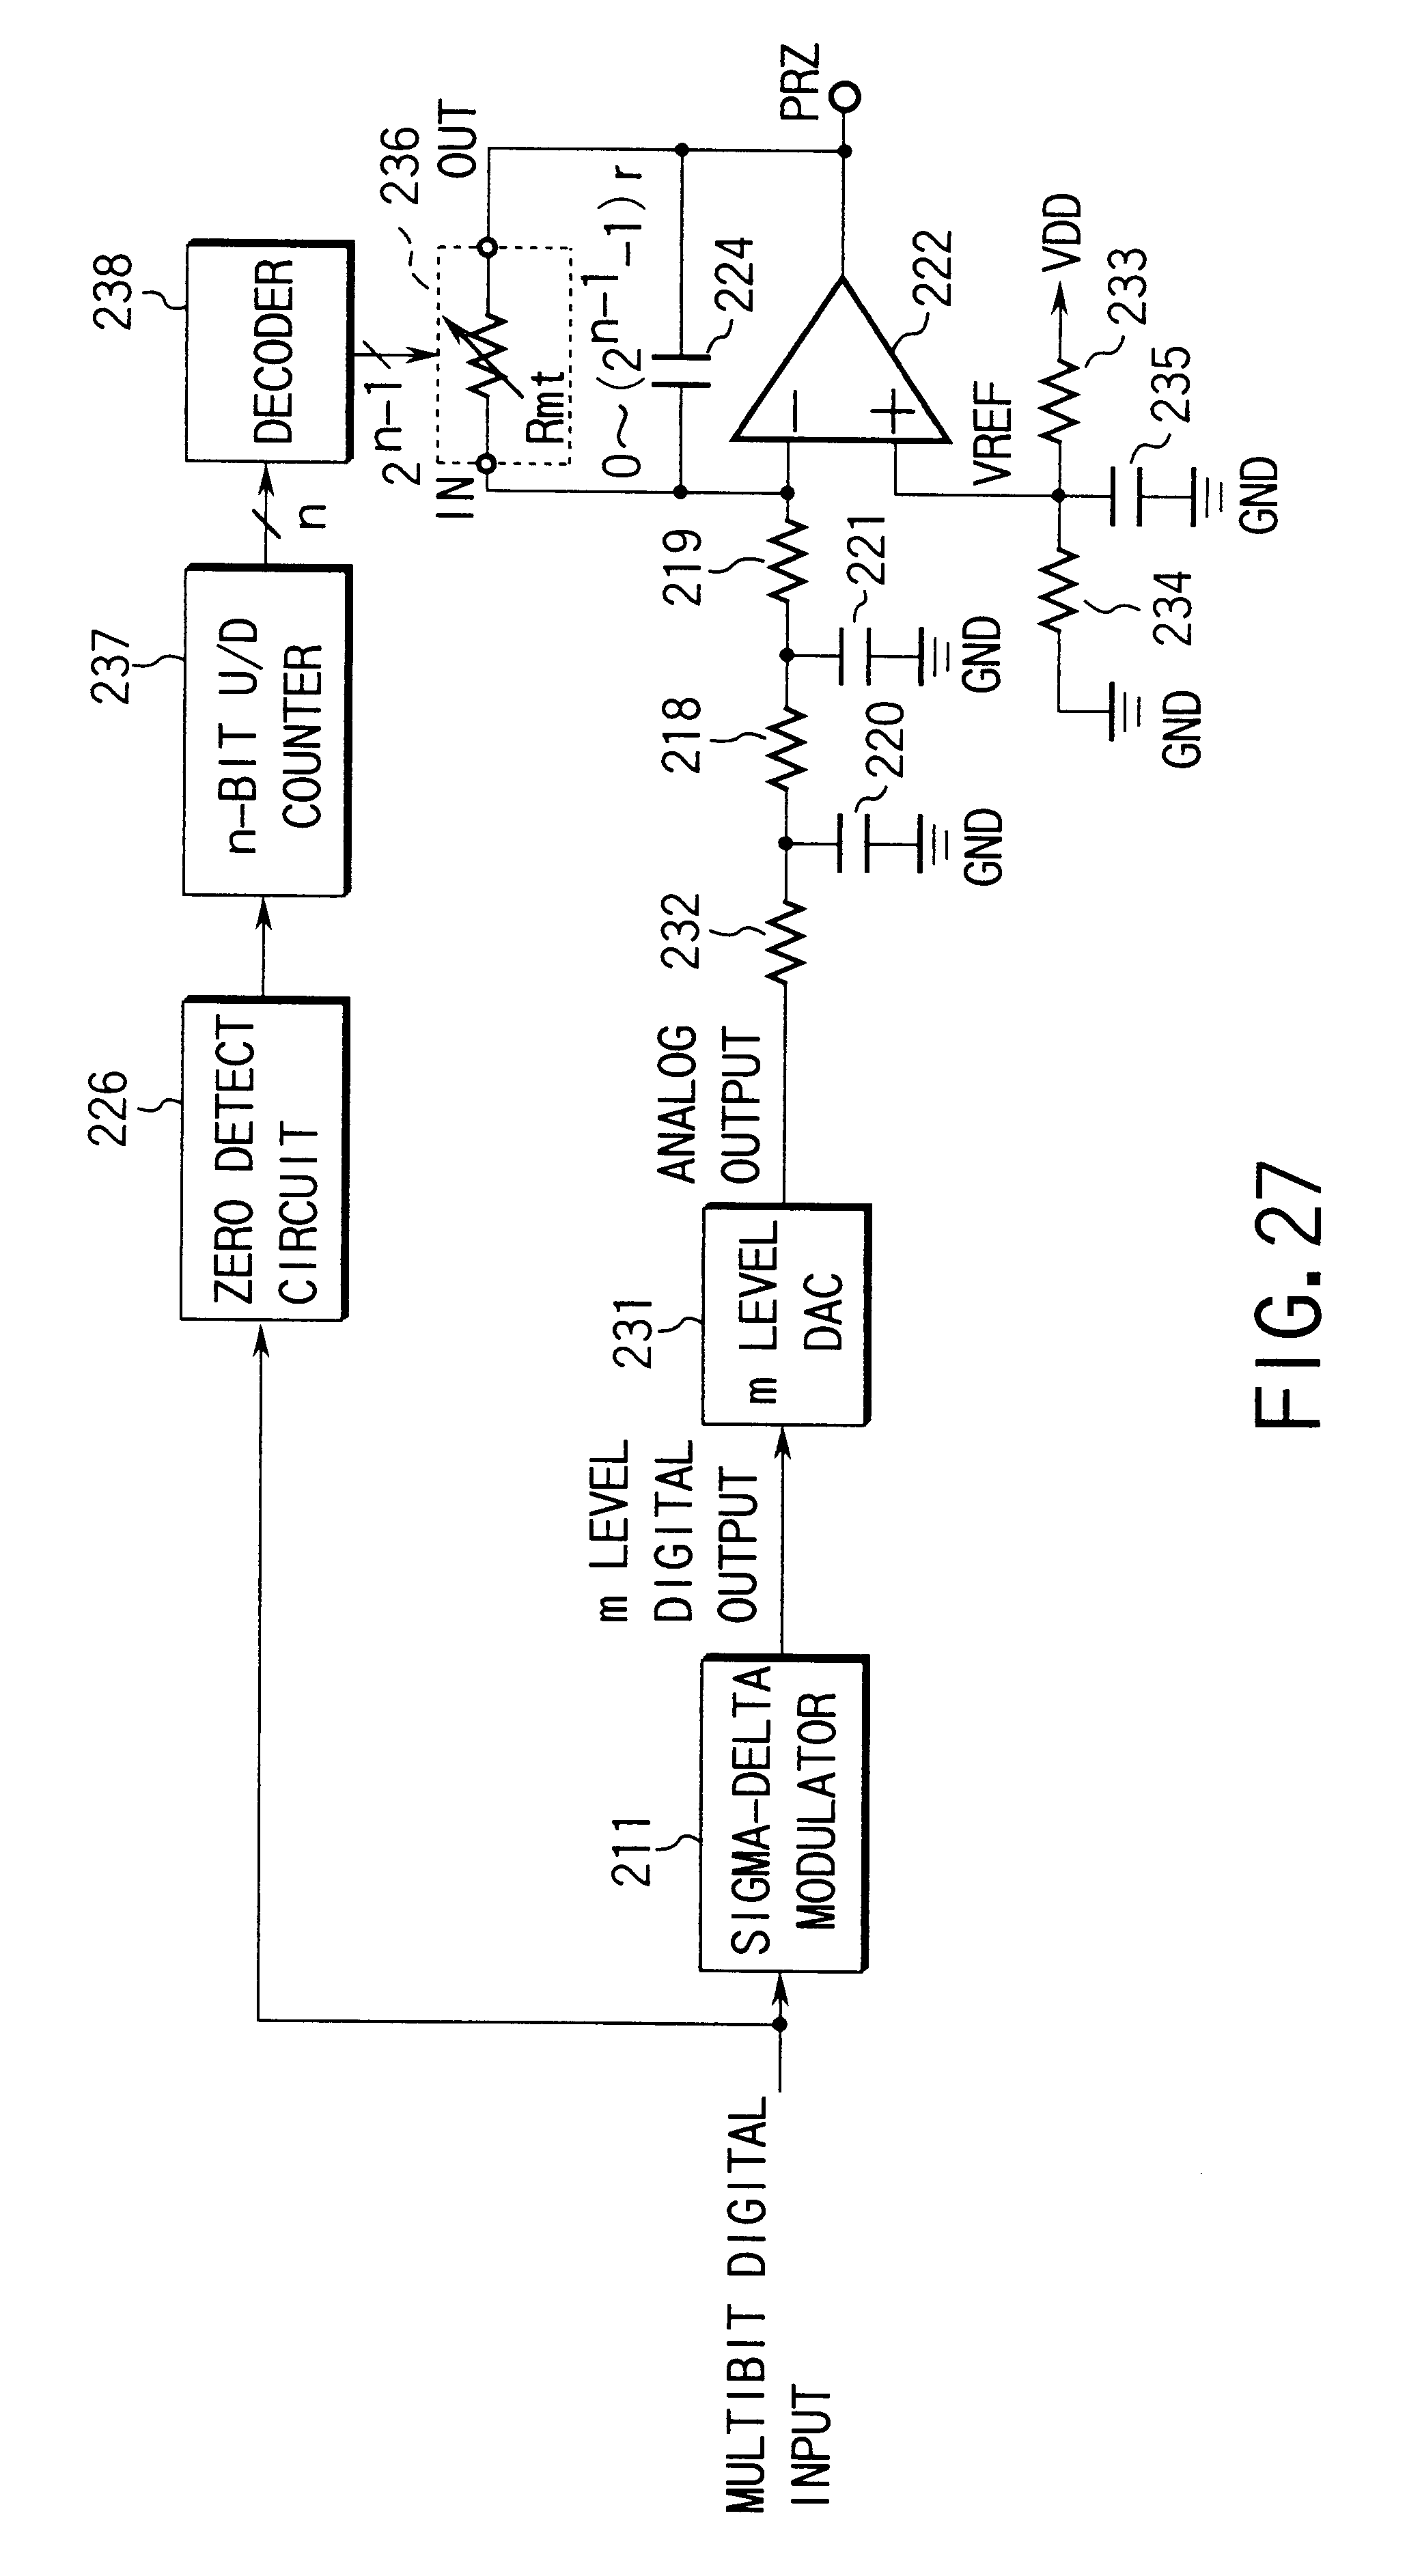 patent us6204789 - variable resistor circuit and a digital-to-analog converter